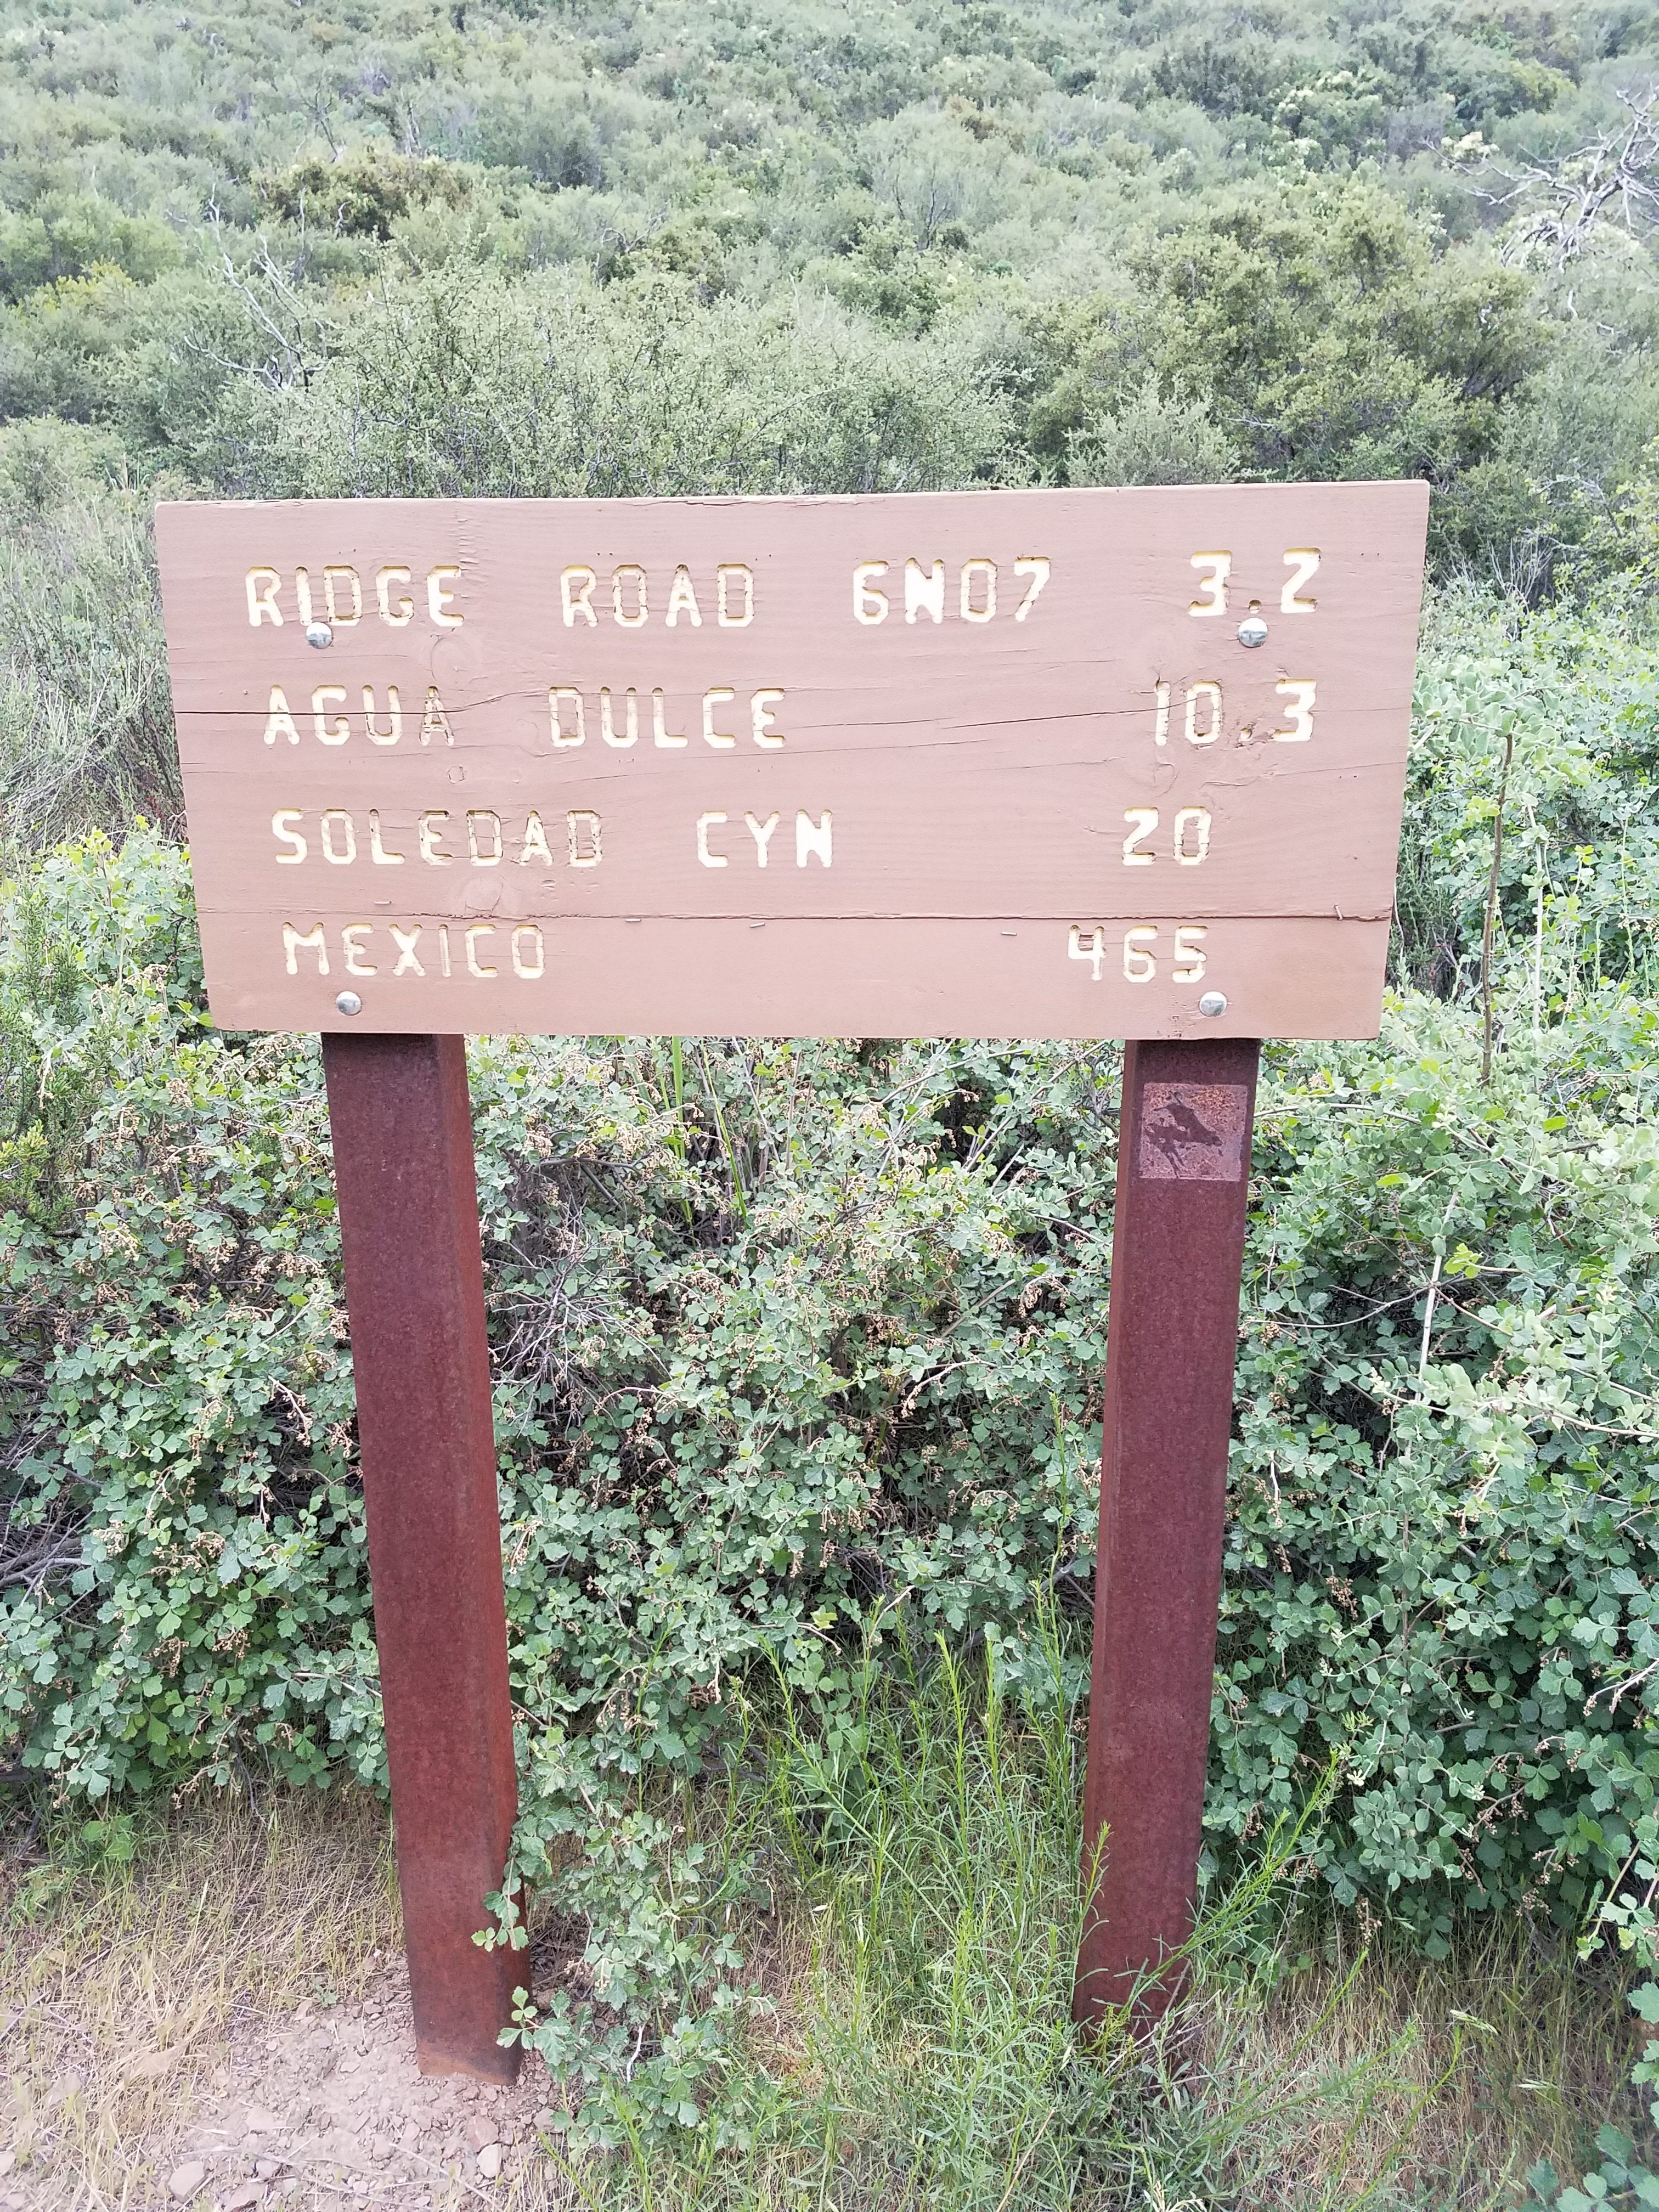 PCT Thru-Hike by the Numbers - The Trek